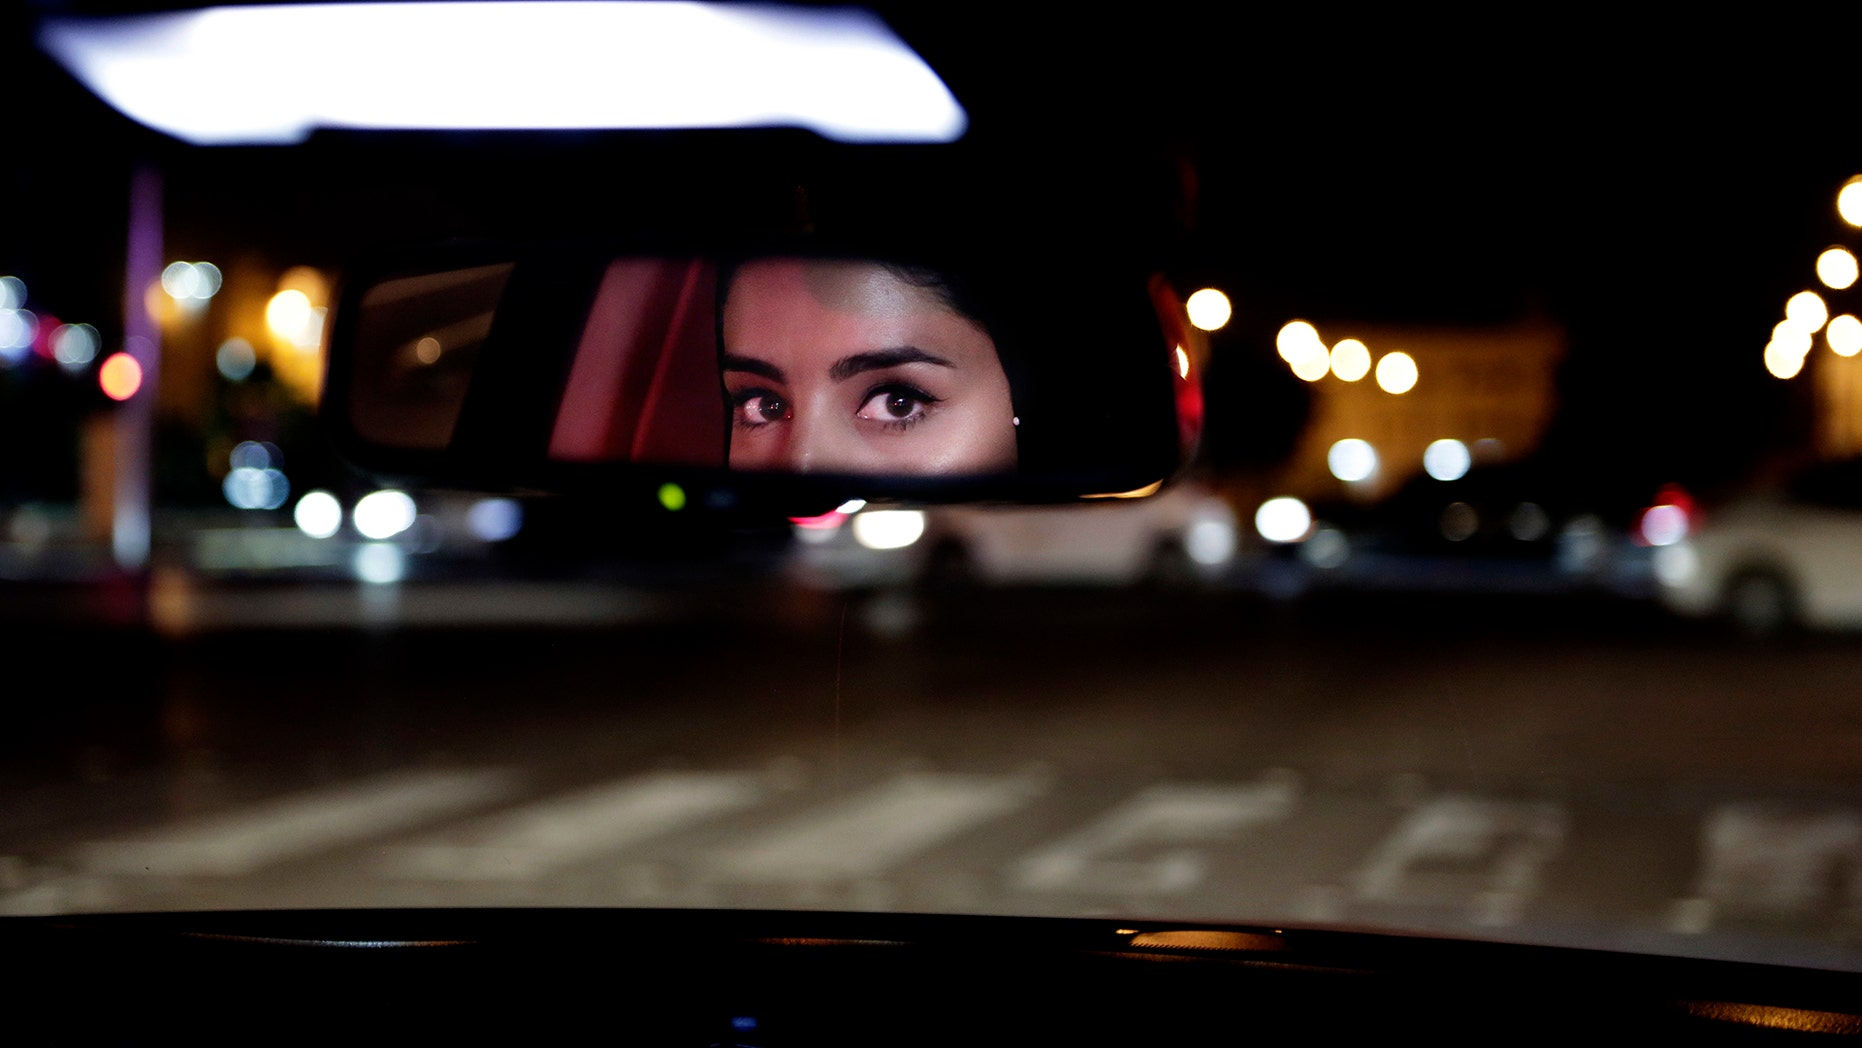 FILE - This Sunday, June 24, 2018, Hessah al-Ajaji's photo is taken for the first time in the bustling Tahlia Street of the capital in Riyadh (Saudi Arabia) after midnight. Saudi Arabian women travel for the first time after being at risk of being arrested if they dare to get behind the wheel. (AP Photo / Nariman El-Mofty, File)